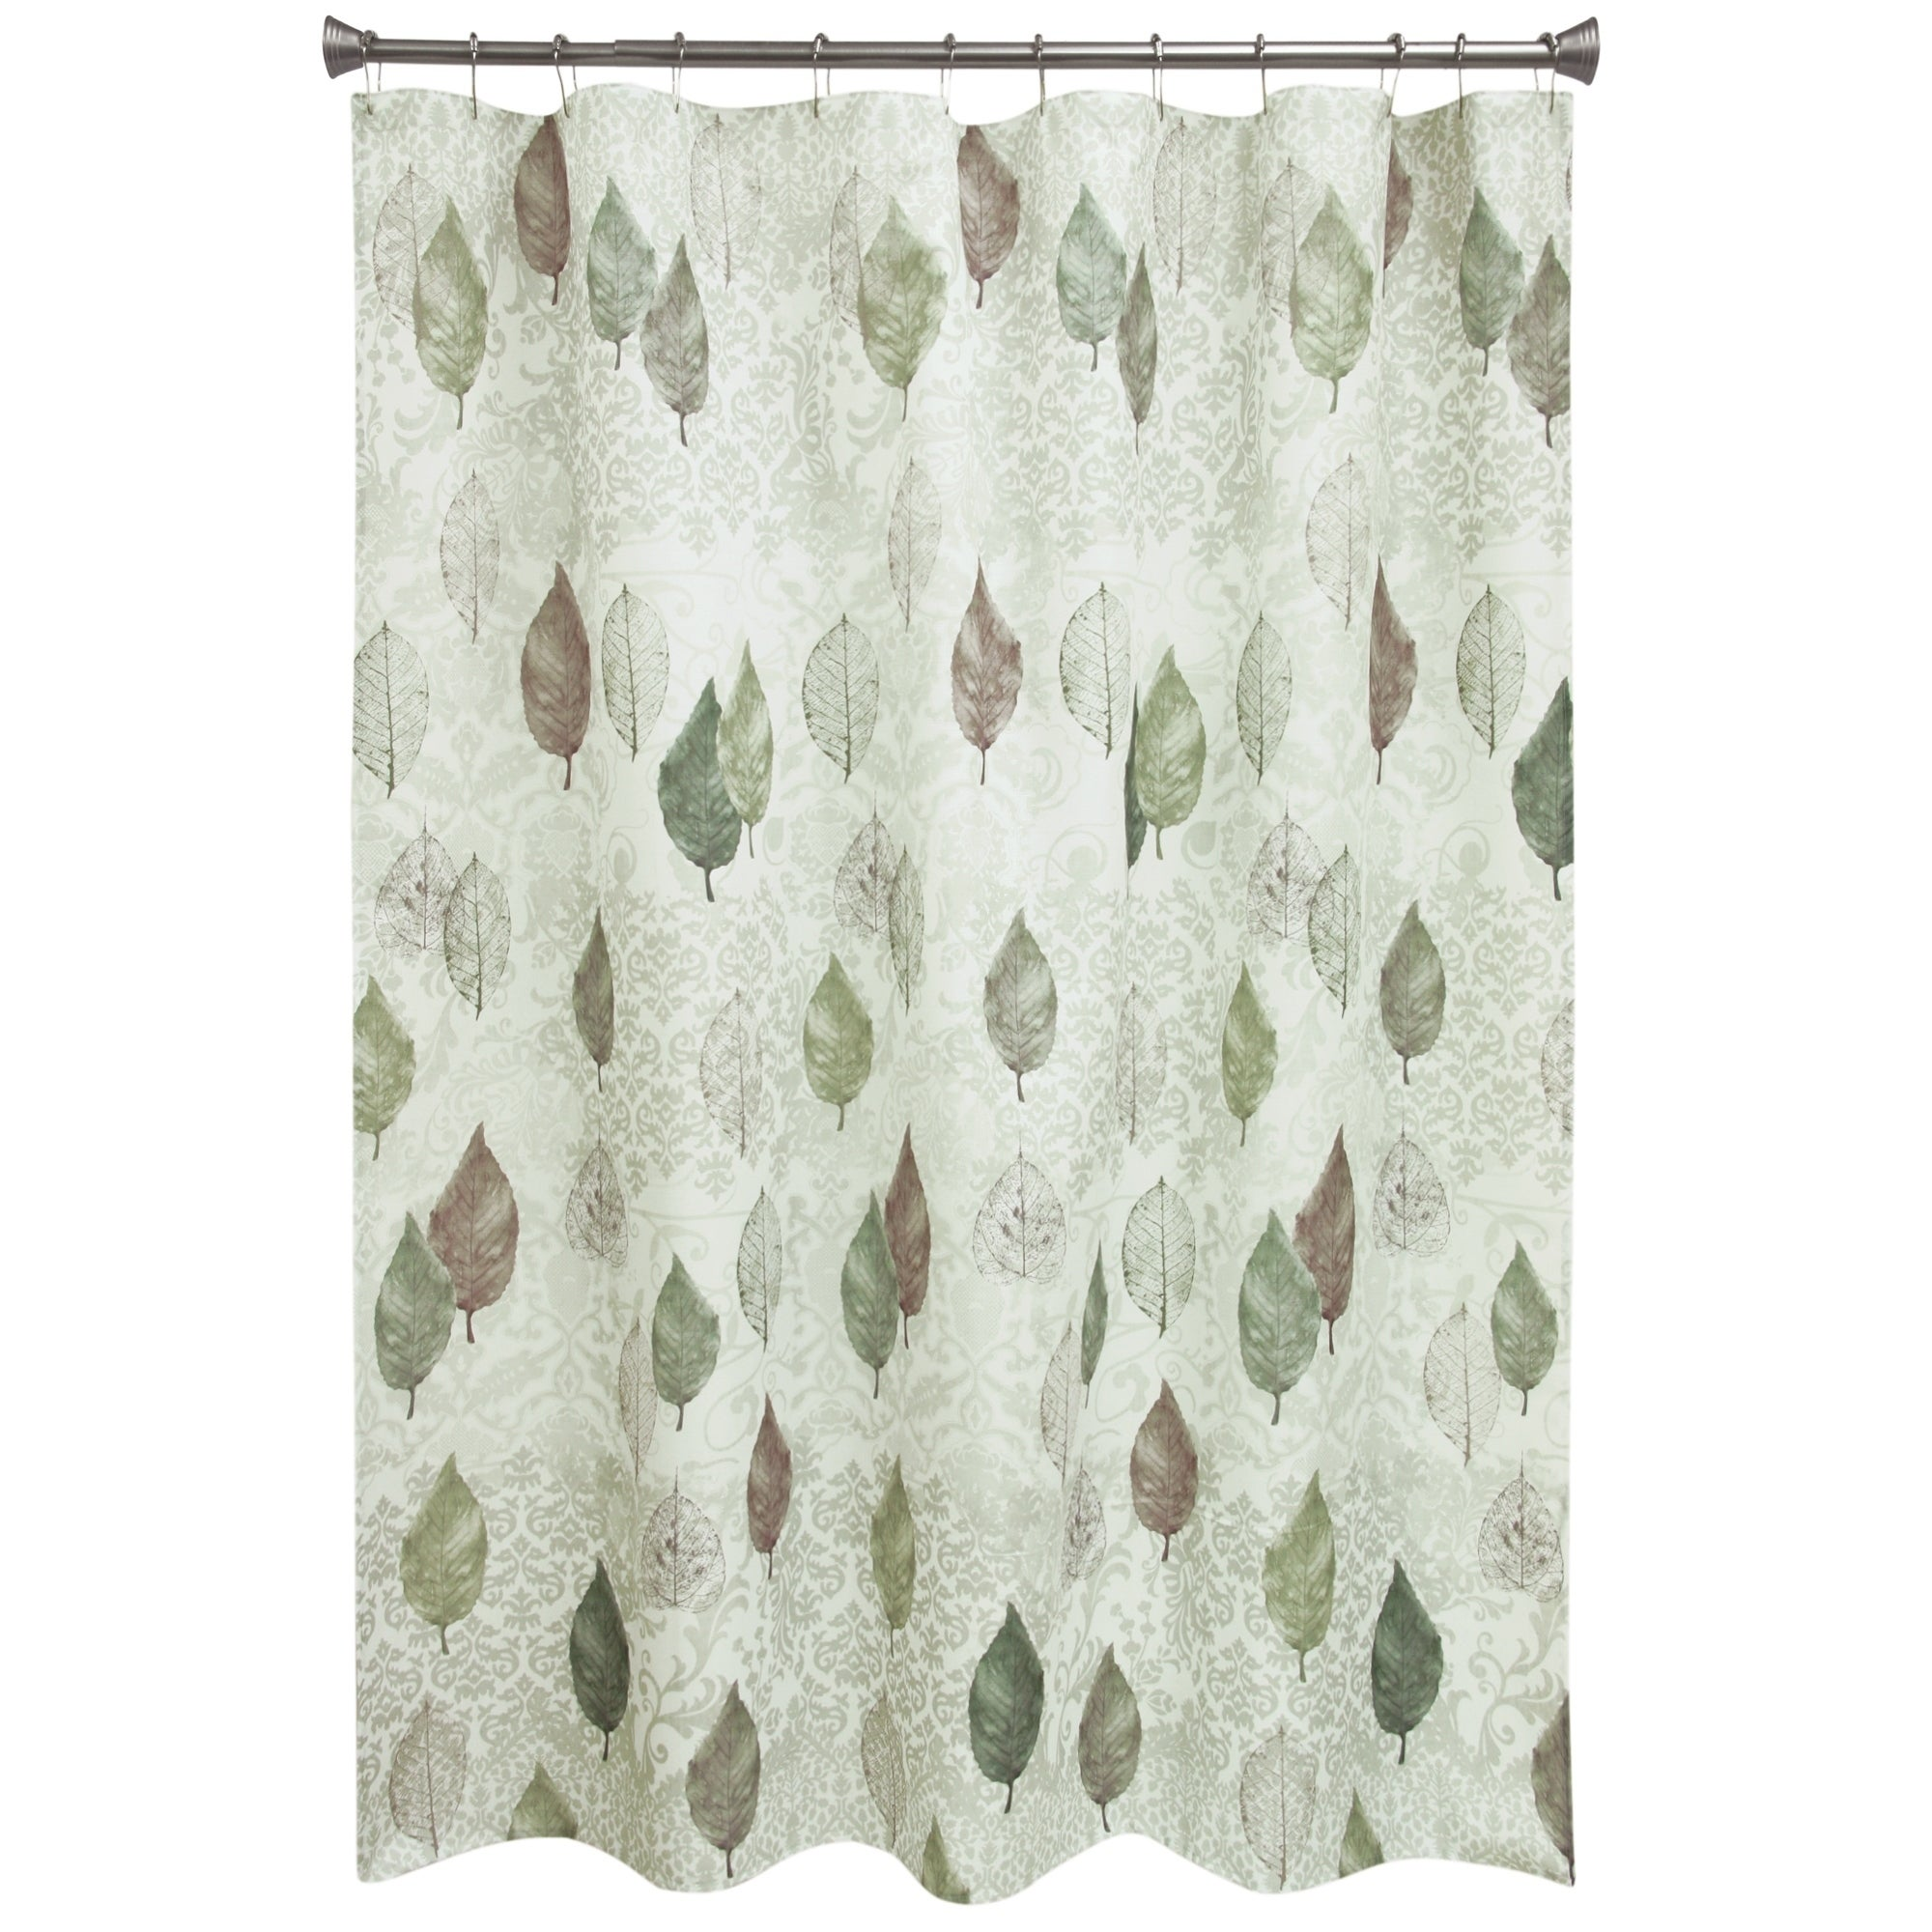 Shop Seville Shower Curtain By Bacova